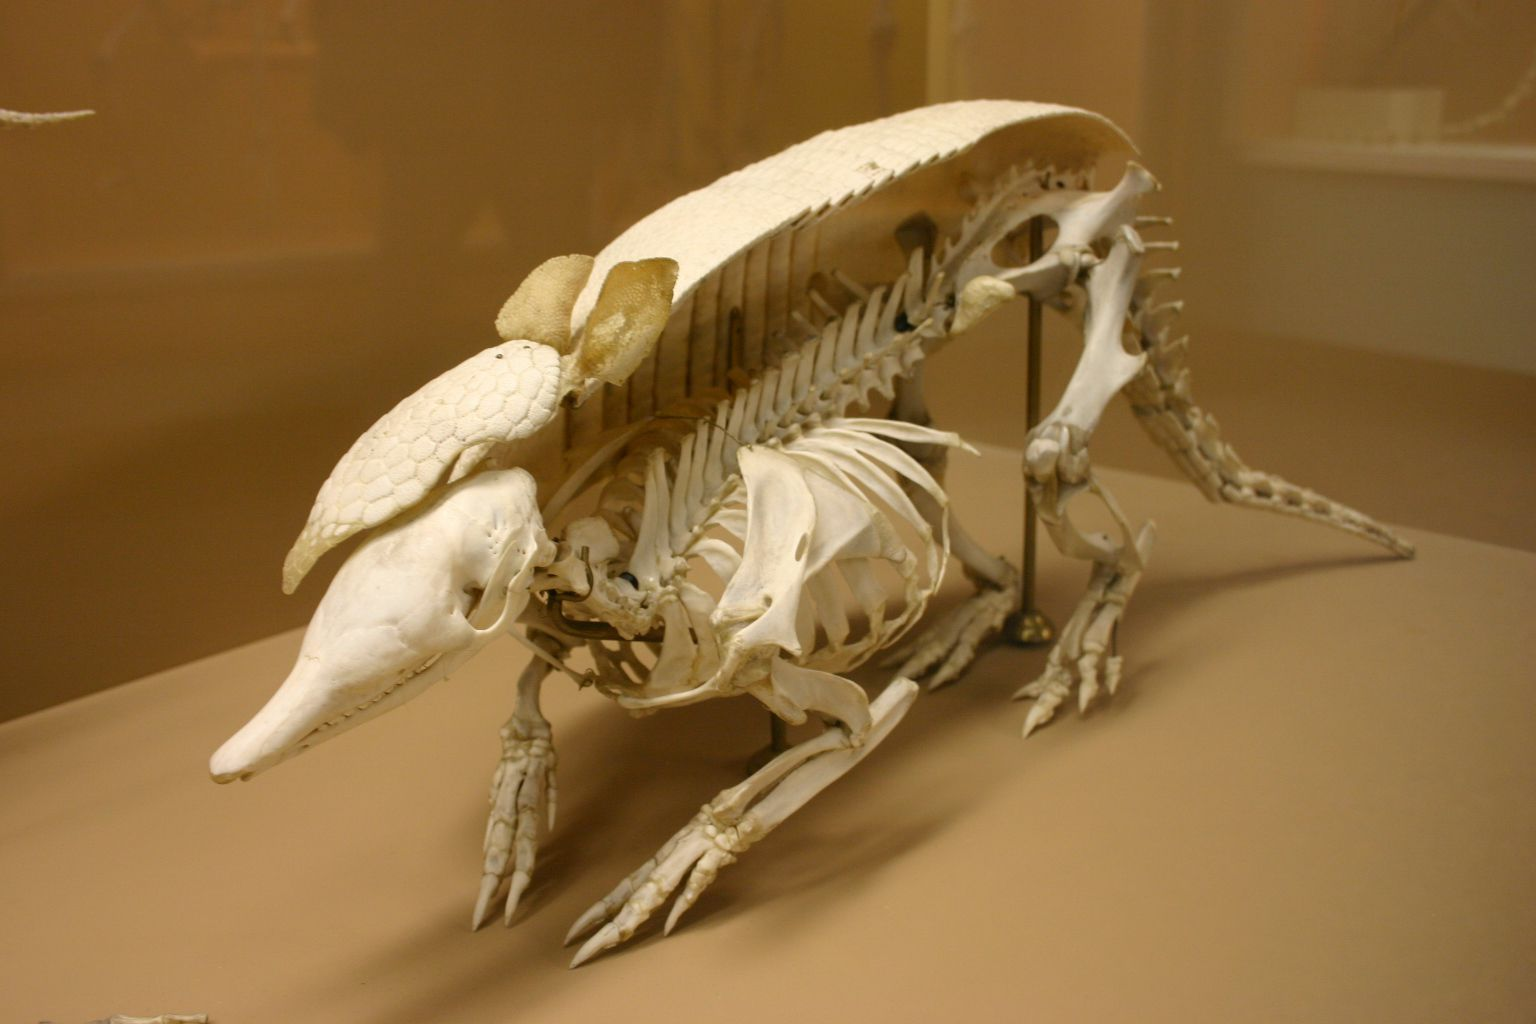 A model cross-section of an armadillo skeleton